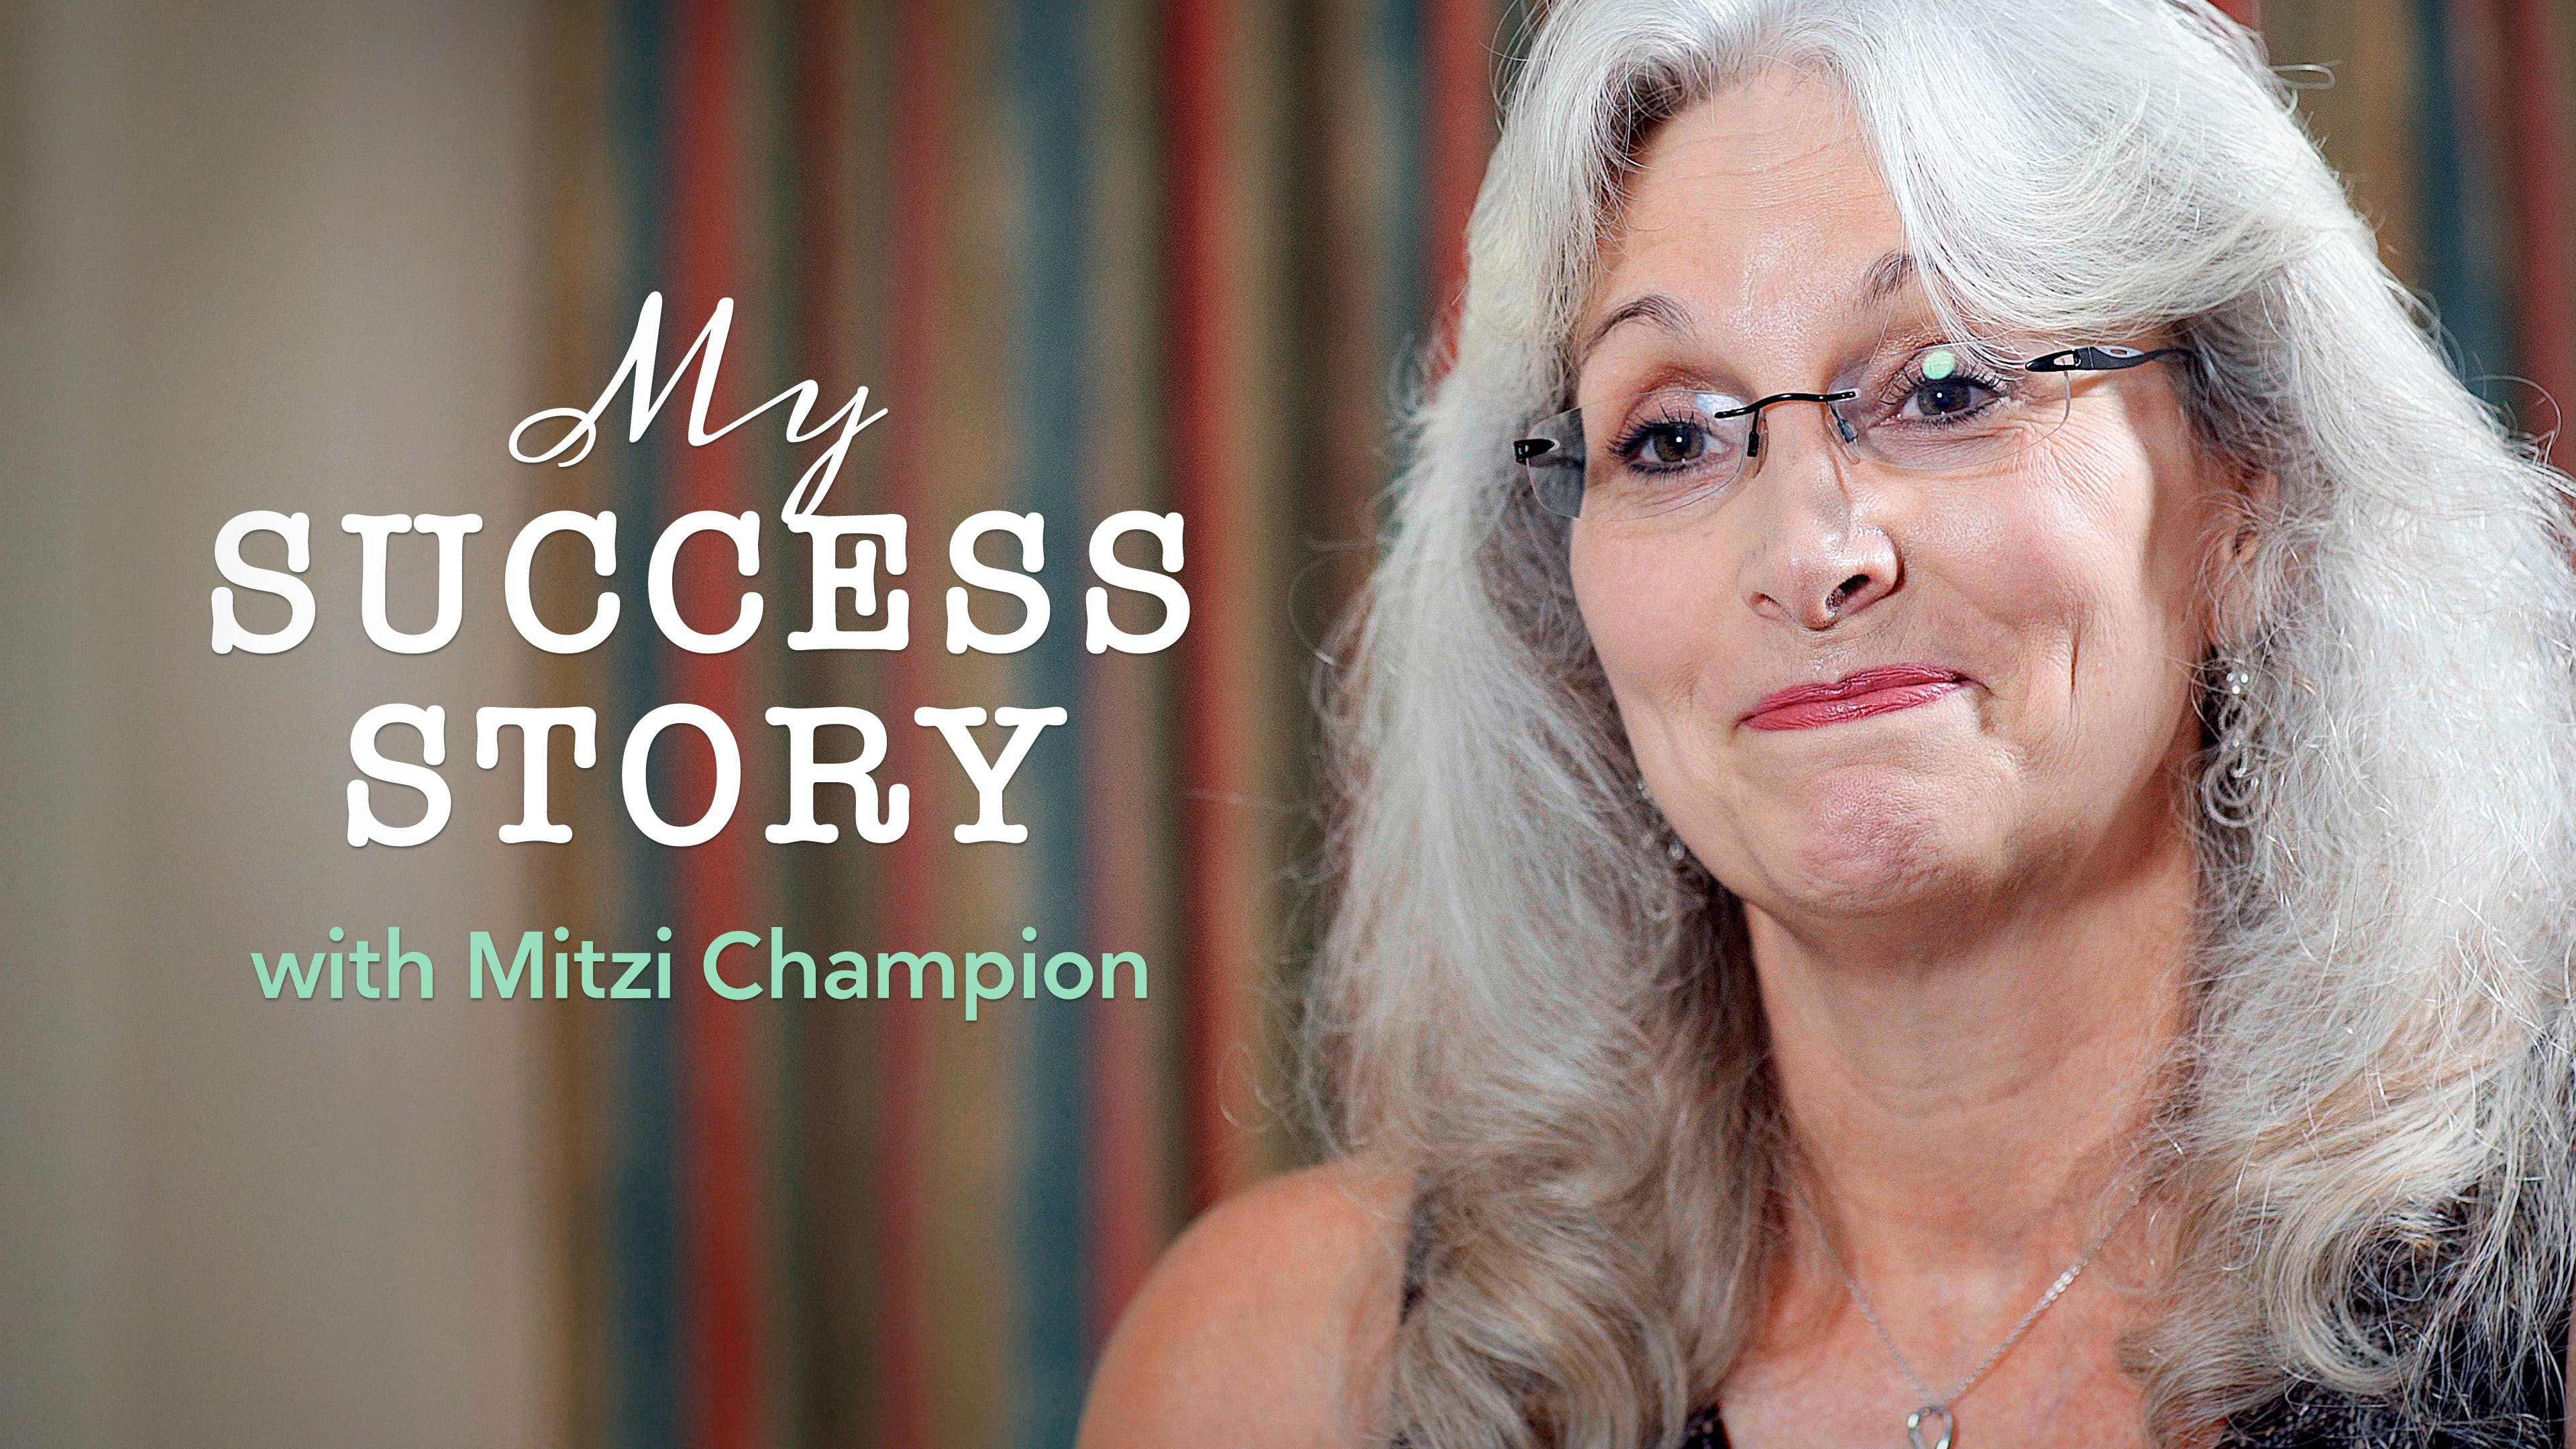 My success story with Mitzi Champion